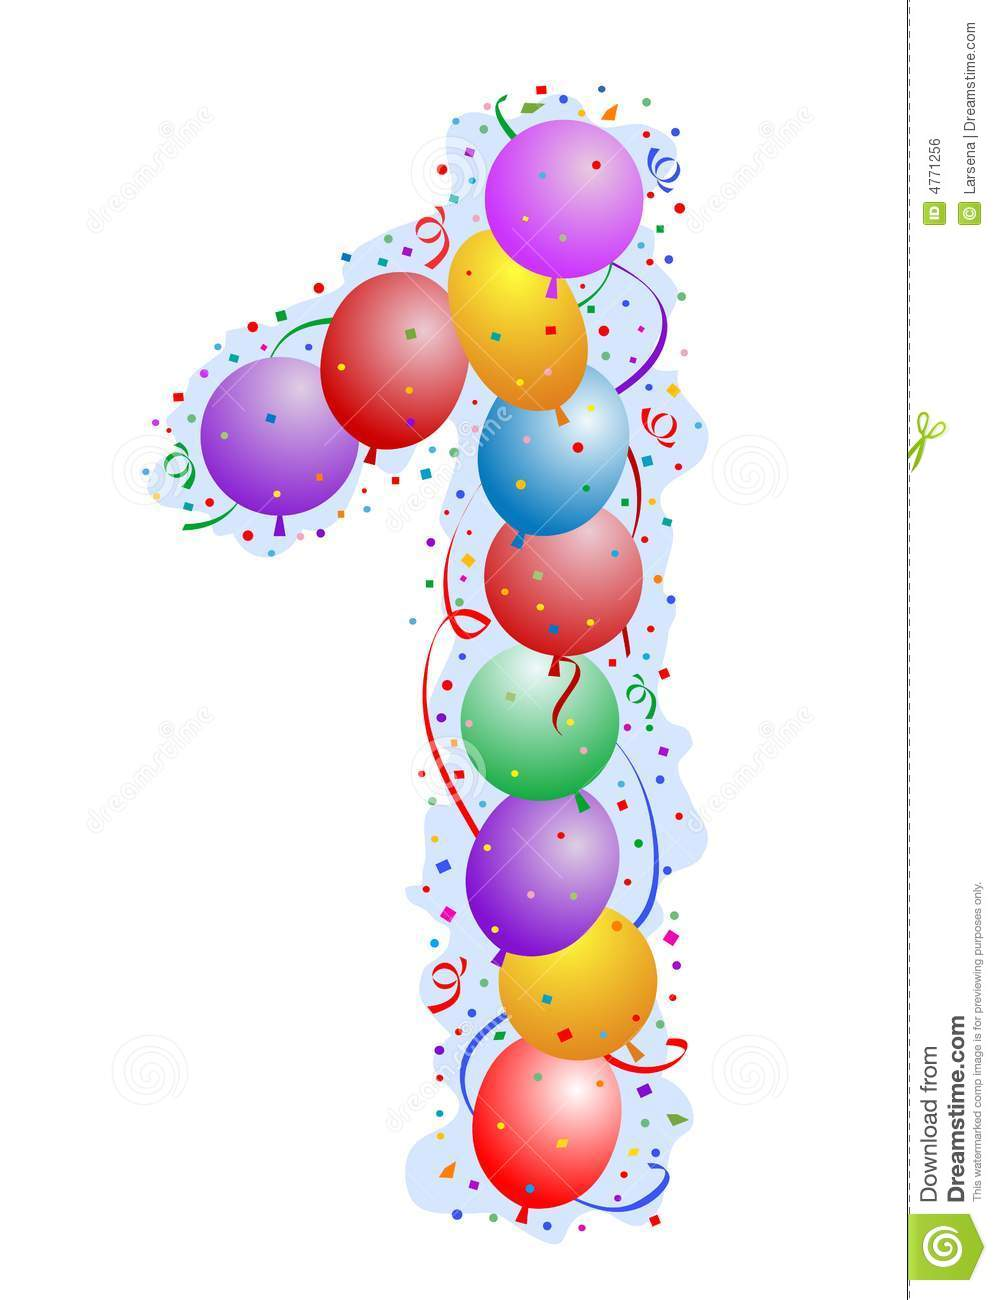 Balloons And Confetti Number 1 Stock Vector - Illustration of ...